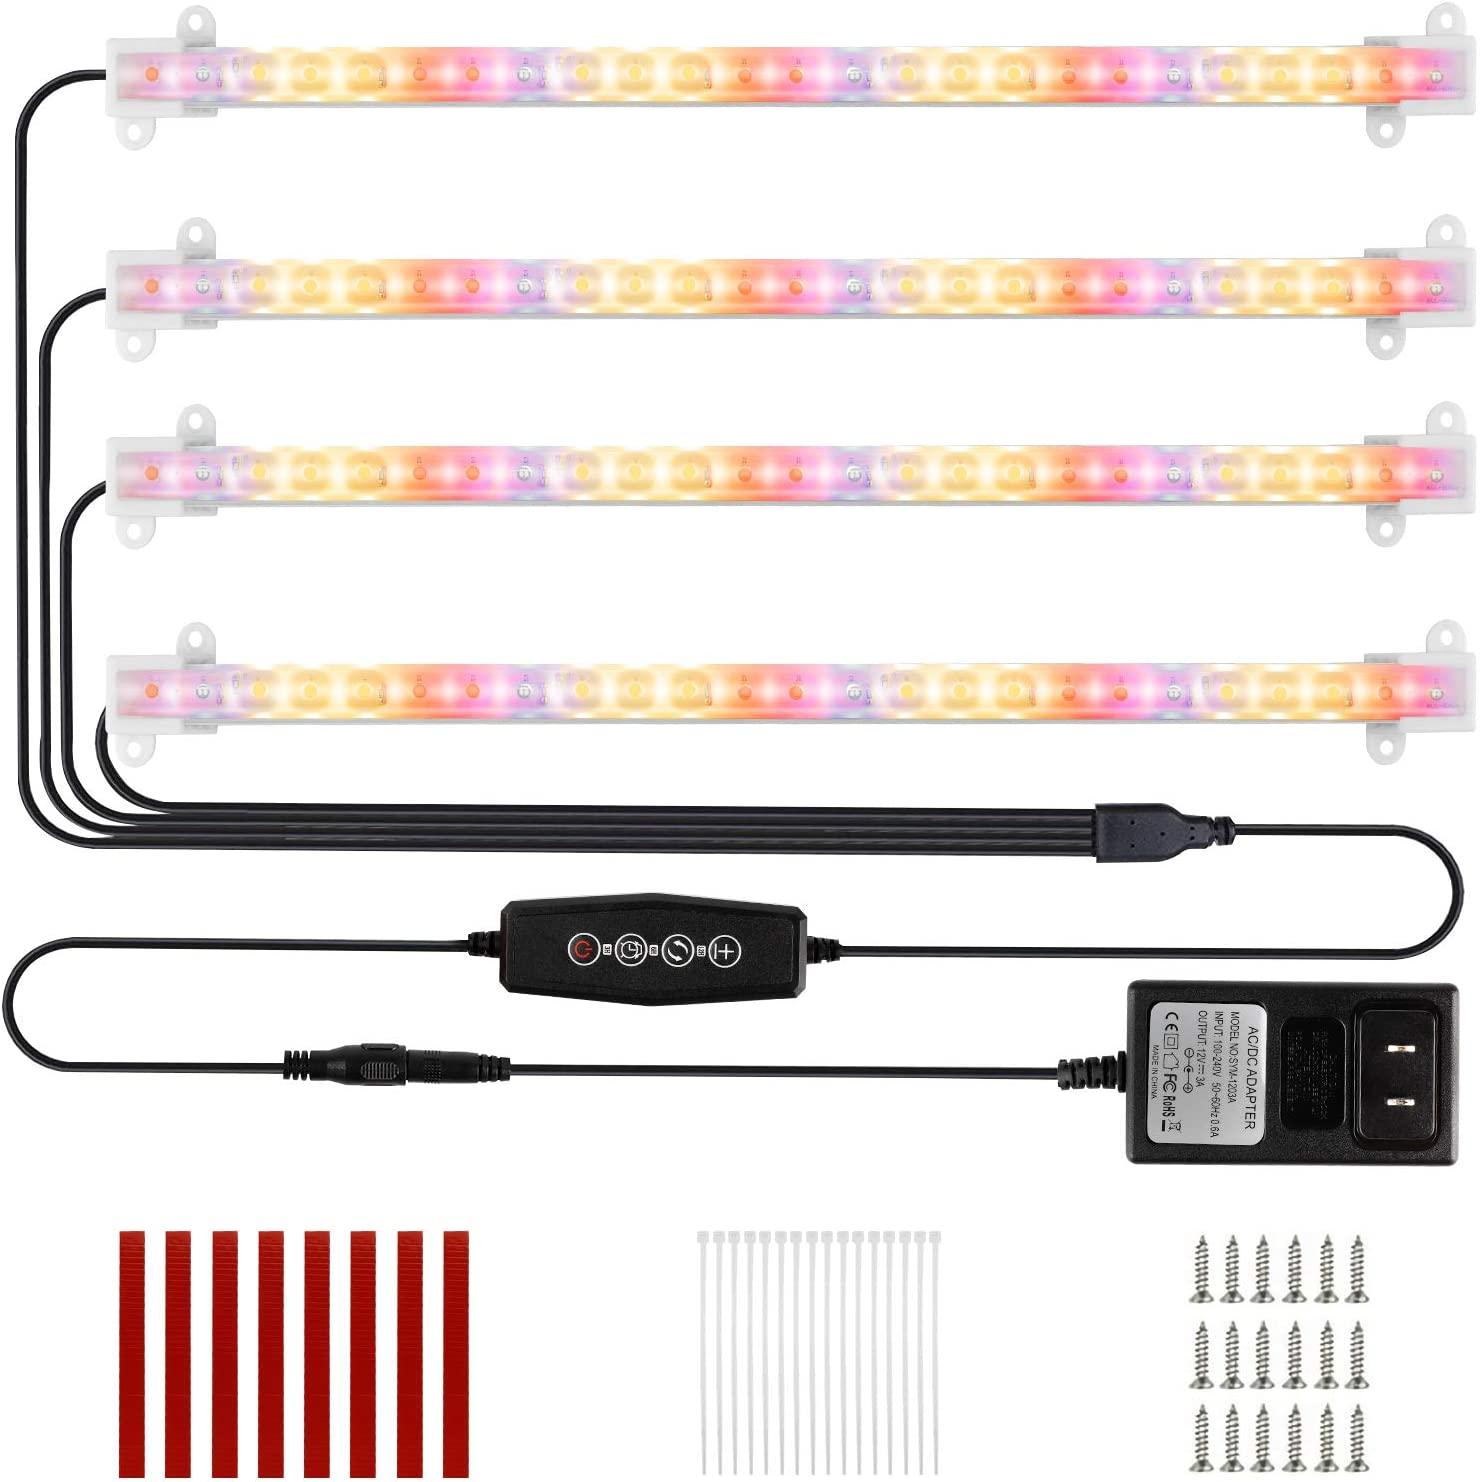 LED Plant Grow Light 4 Strips Full Spectrum Red Blue Sunlike Growing Lamp with Auto Cycle Timer 3/6/12 Hours, 5 Dimmable Levels, 3 Switch Modes for Indoor House Garden Seedling Hydroponics Succulent